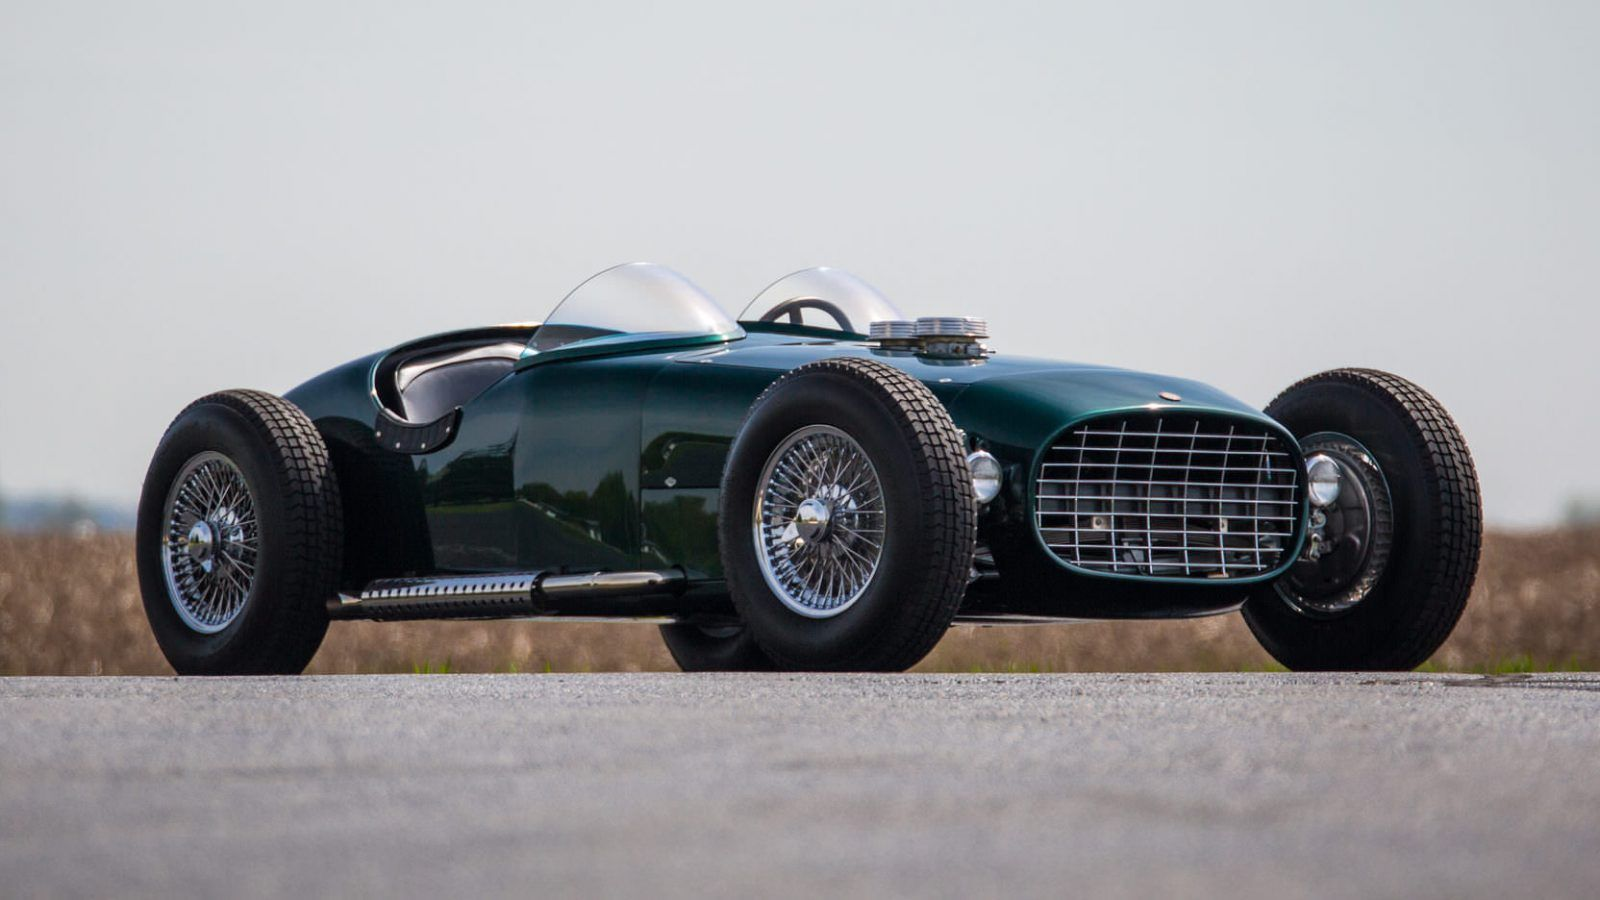 1959 Troy Roadster | Troy, Roadster car and Indy cars